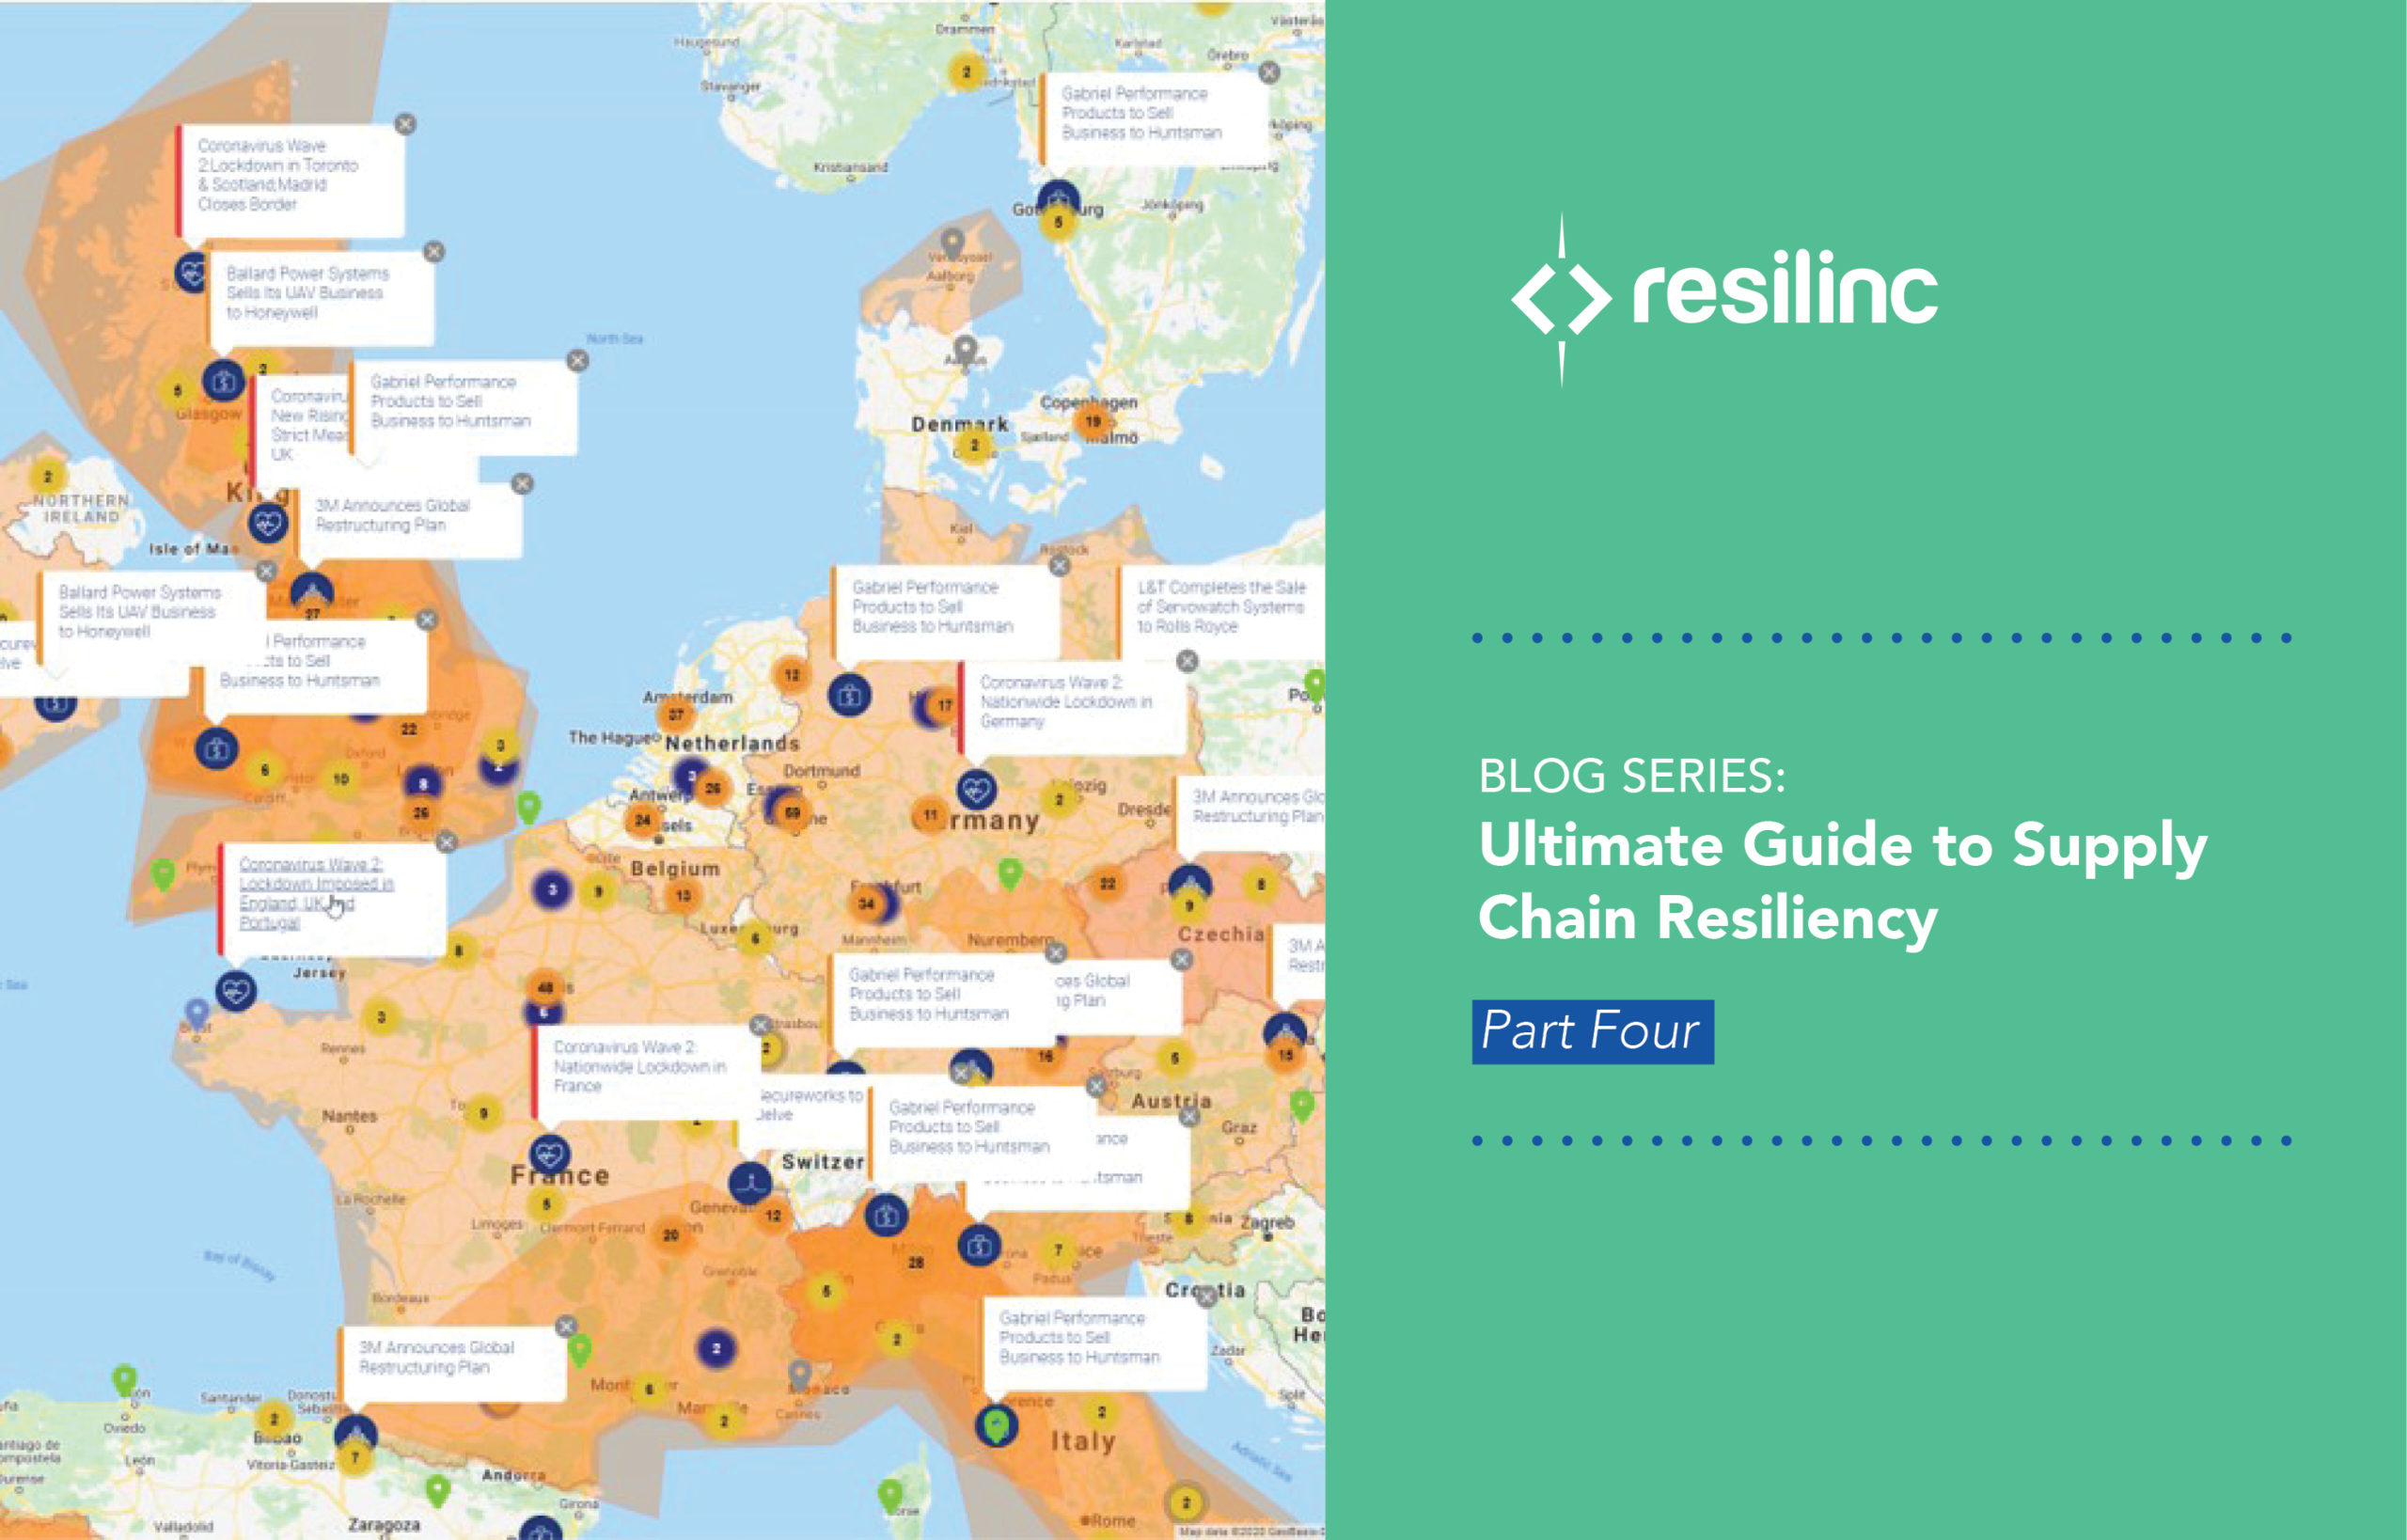 Ultimate guide to supply chain resiliency part four